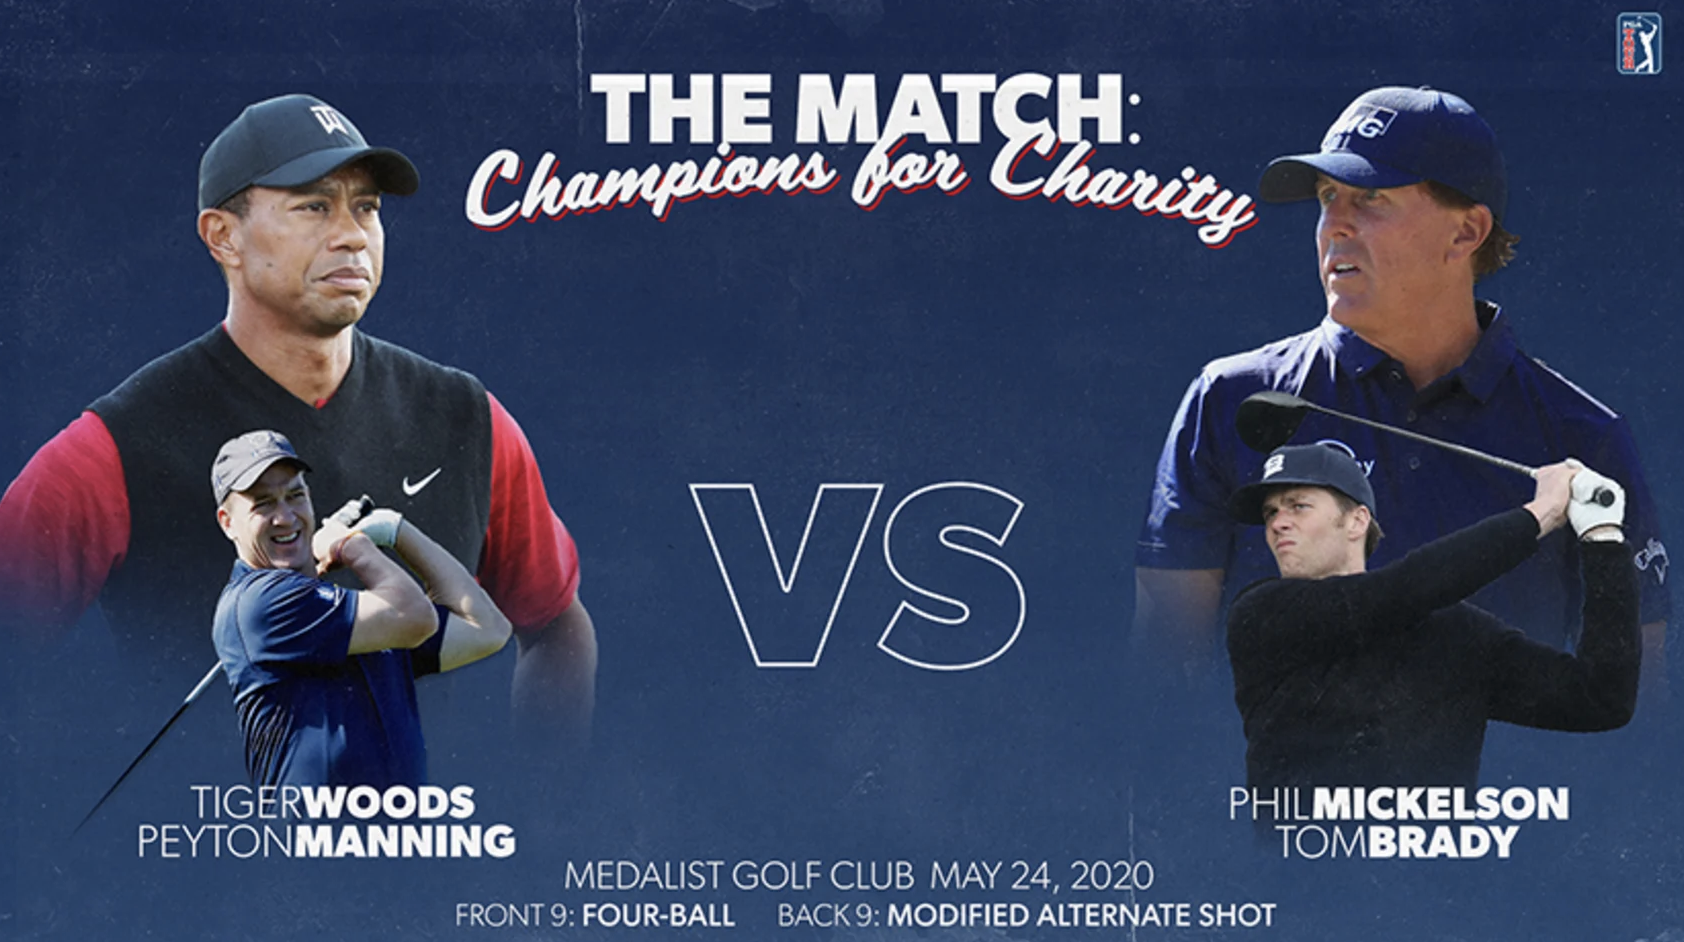 Tiger Woods and Peyton Manning Take On Phil Mickelson and Tom Brady in 'The Match: Champions for Charity' with M to be Donated to Fight Coronavirus